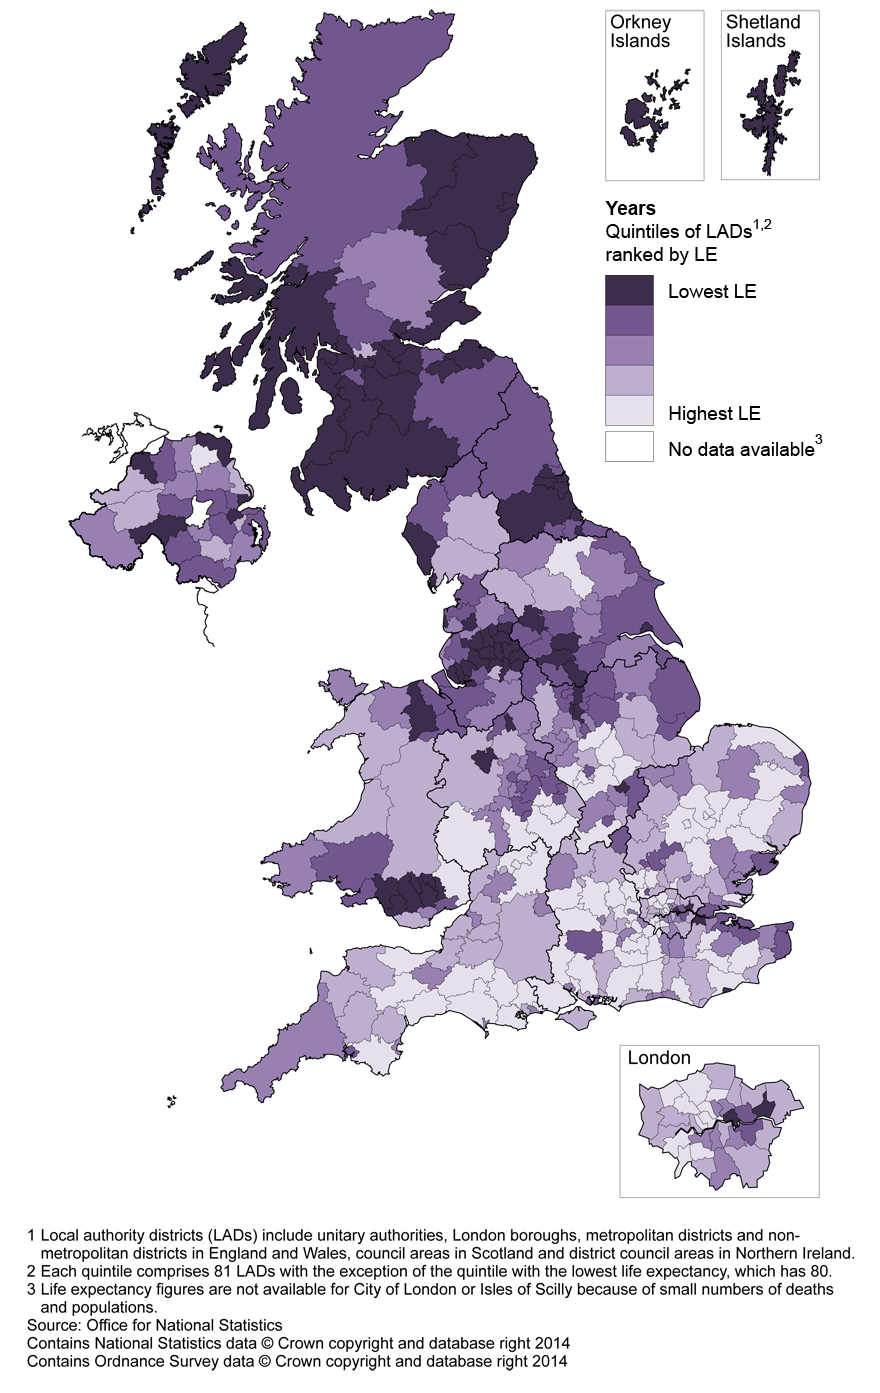 Map 4: Life expectancy (LE) for females at age 65 by local authority district, United Kingdom, 2010–12